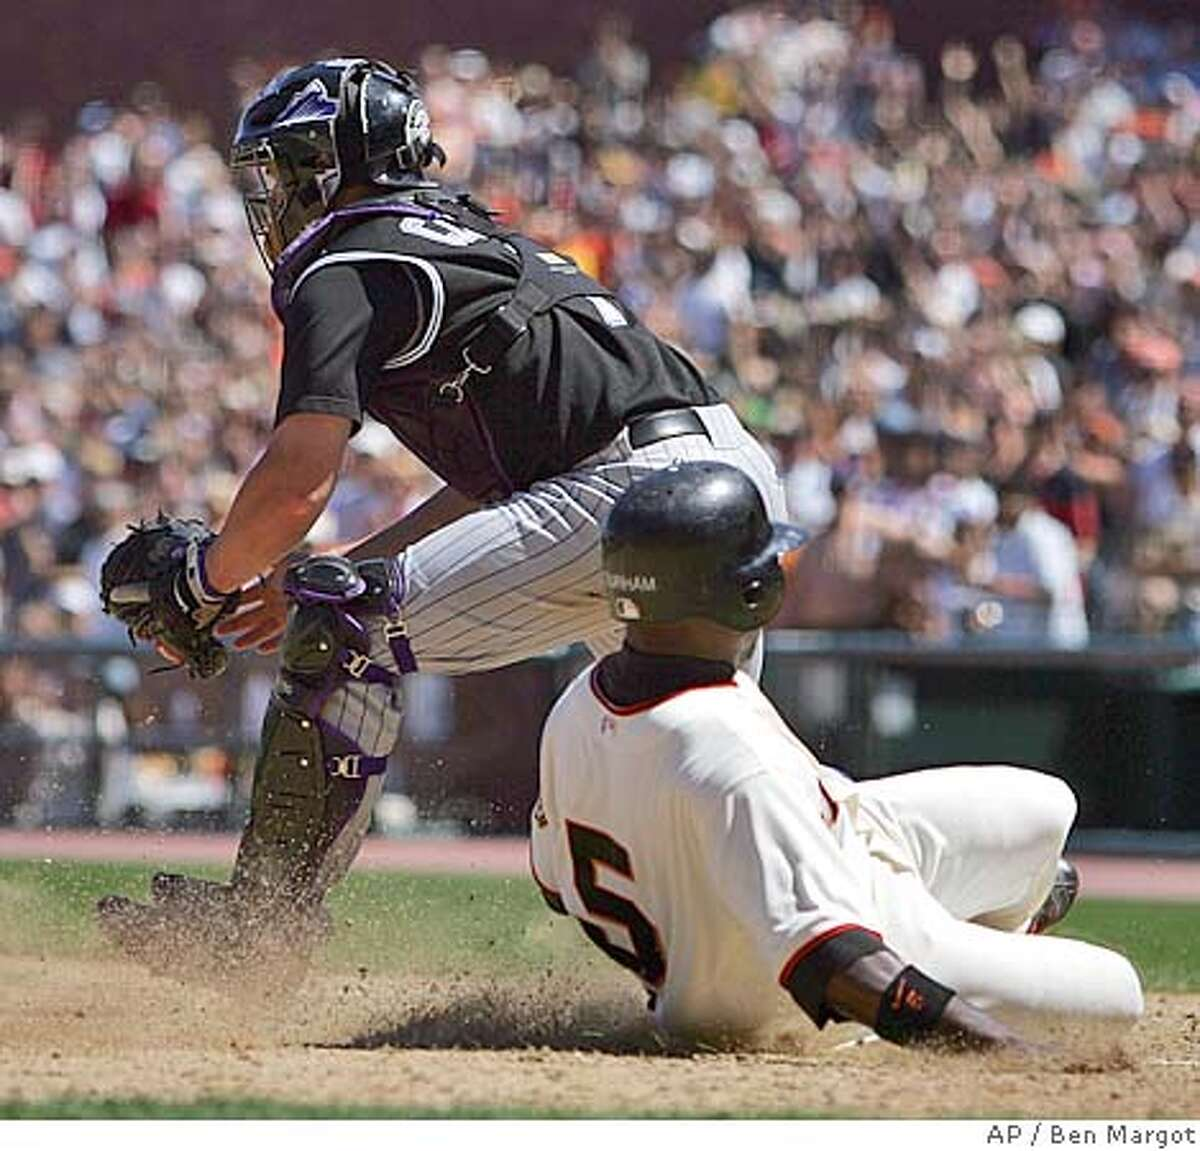 San Francisco Giants' Ray Durham scores behind Colorado Rockies' catcher J.D. Closser in the eighth inning Thursday, Aug. 4, 2005, in San Francisco. San Francisco won the game, 6-4. (AP Photo/Ben Margot)